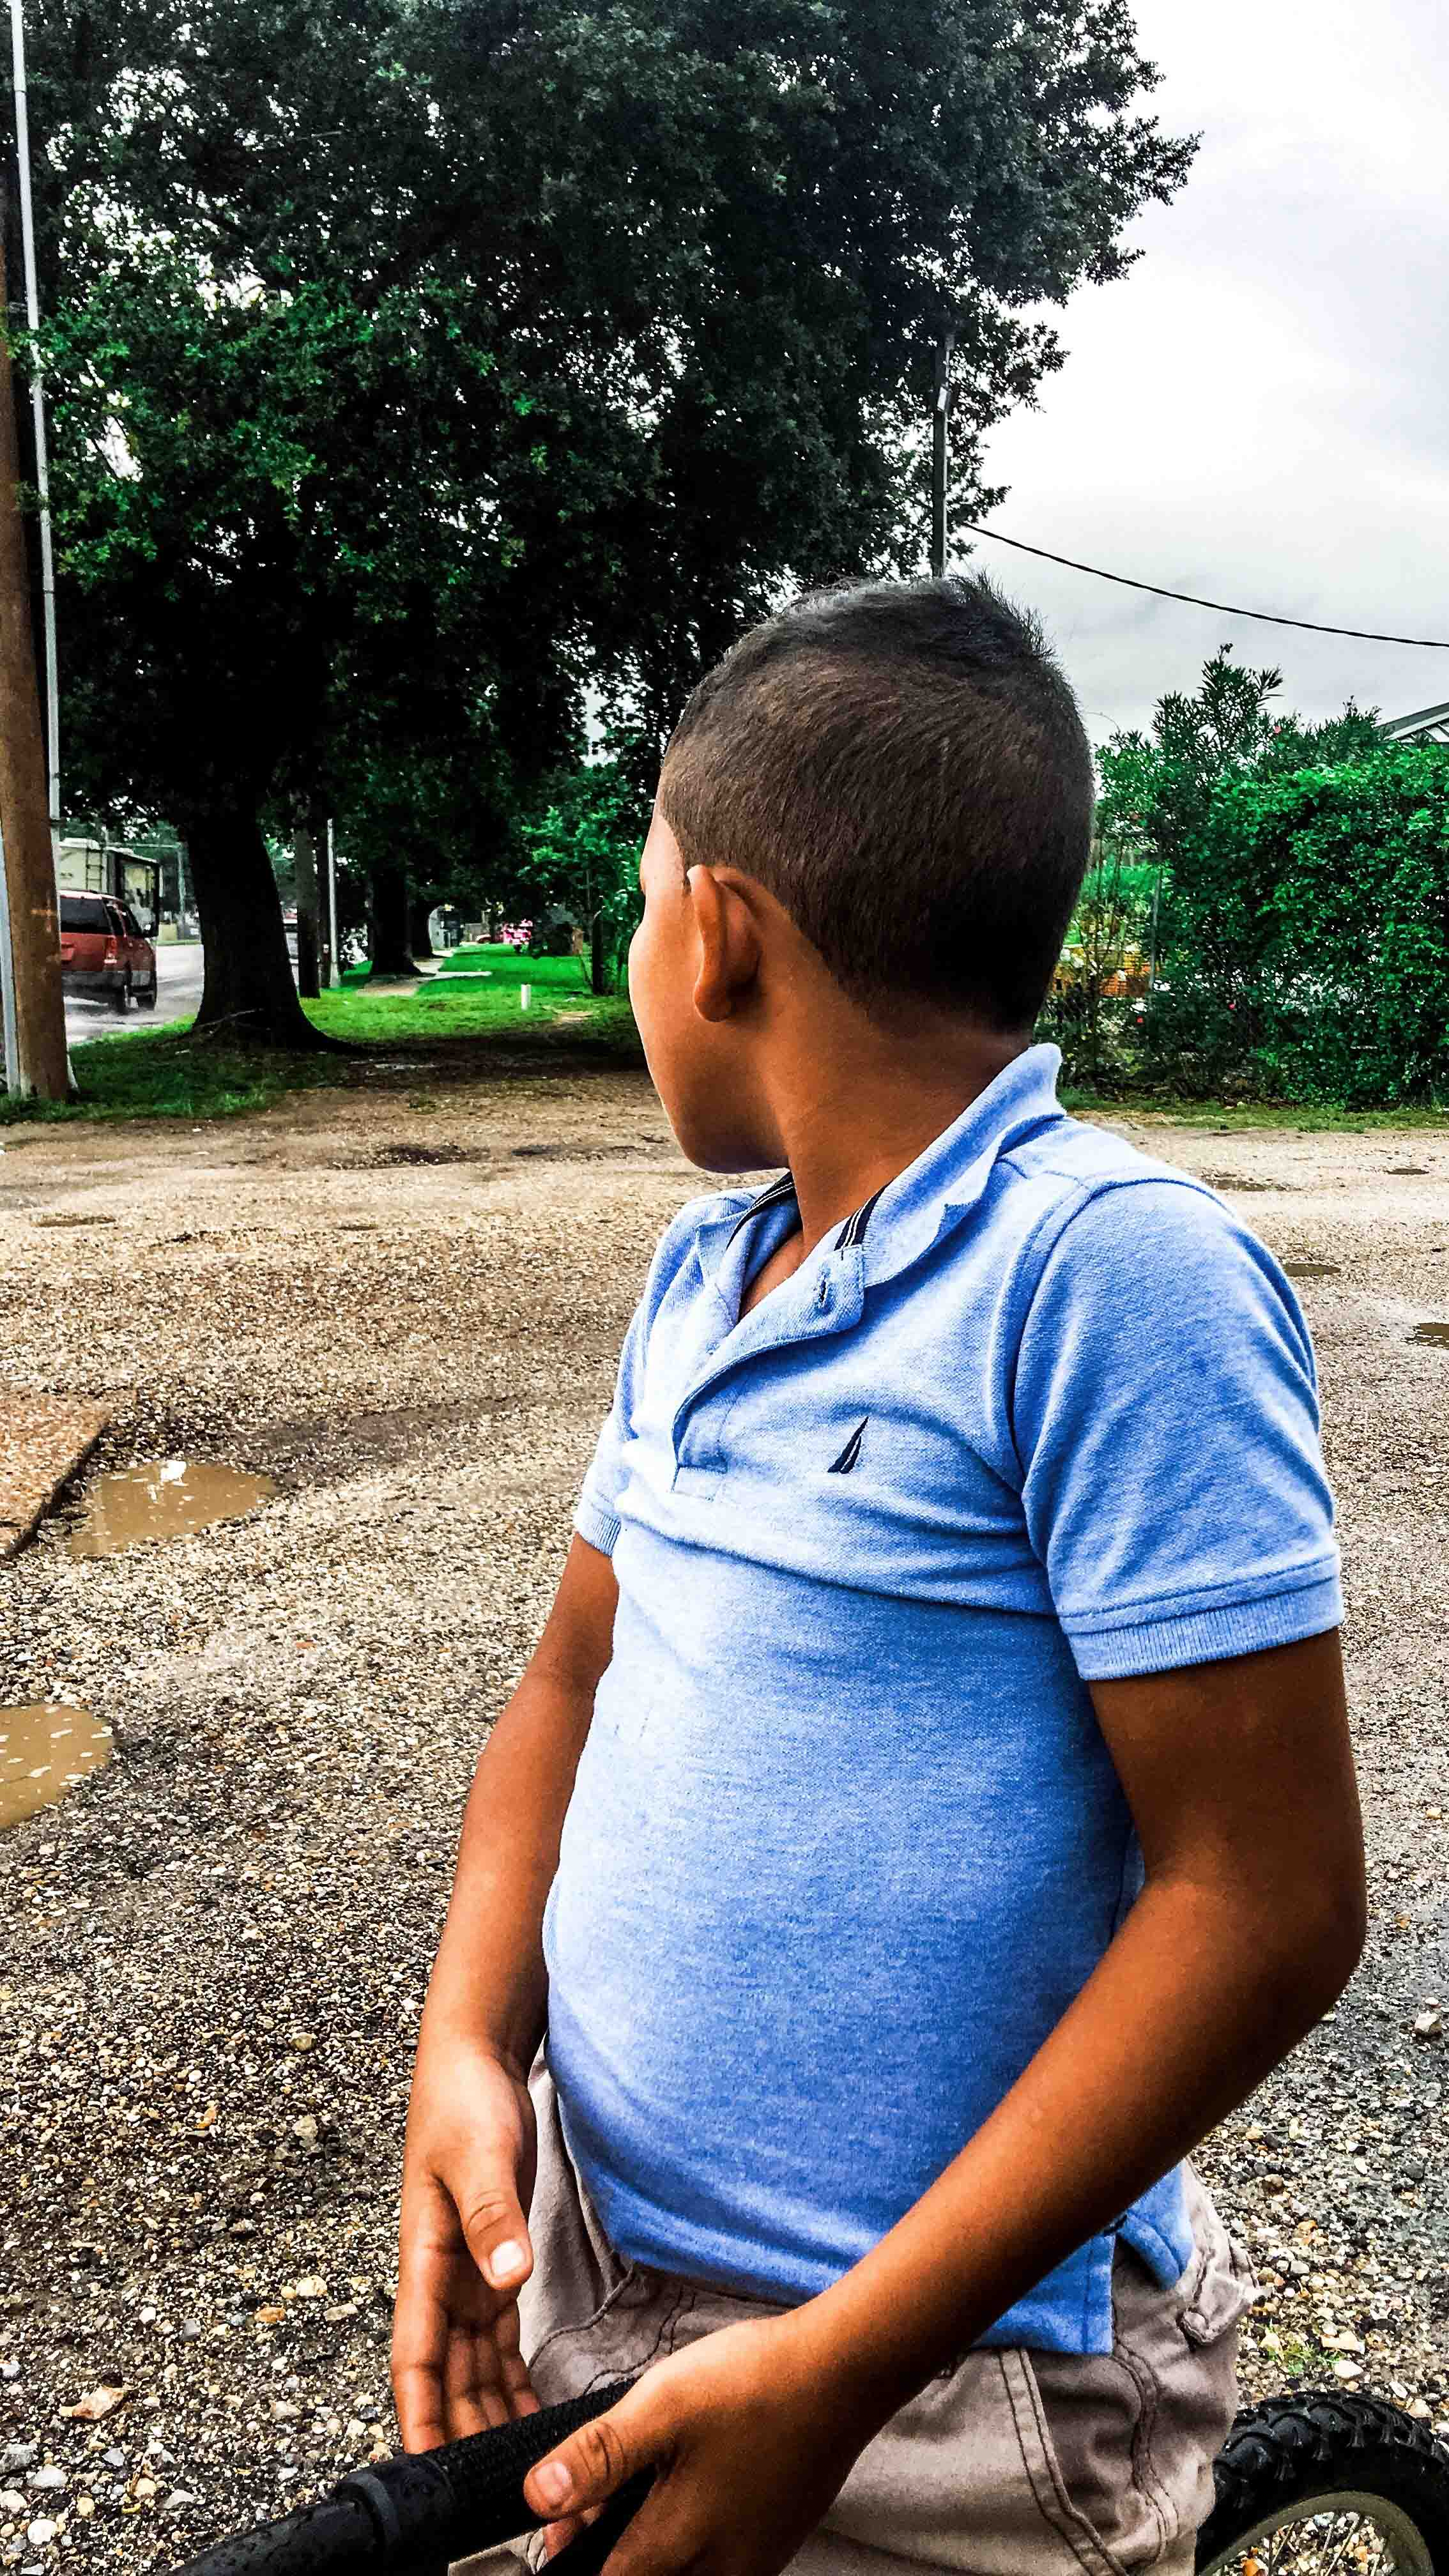 Maribel Bernardez's 10-year-old son, pictured outside of his home near New Orleans earlier this week, spent six months in a troubled Texas facility, the Shiloh Treatment Center.